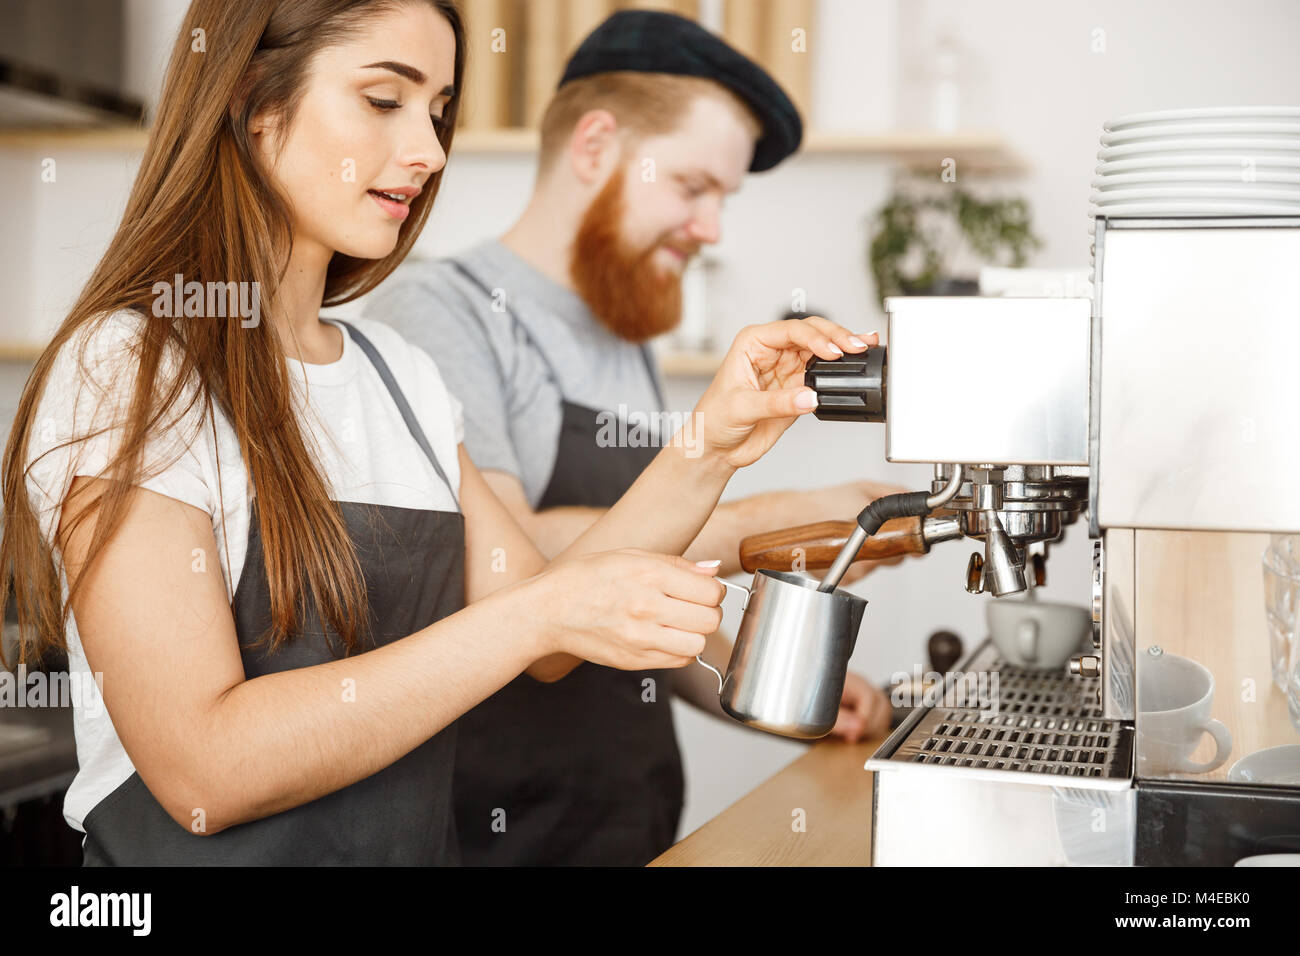 Coffee Business Concept - portrait of lady barista in apron preparing and steaming milk for coffee order with her - Stock Image